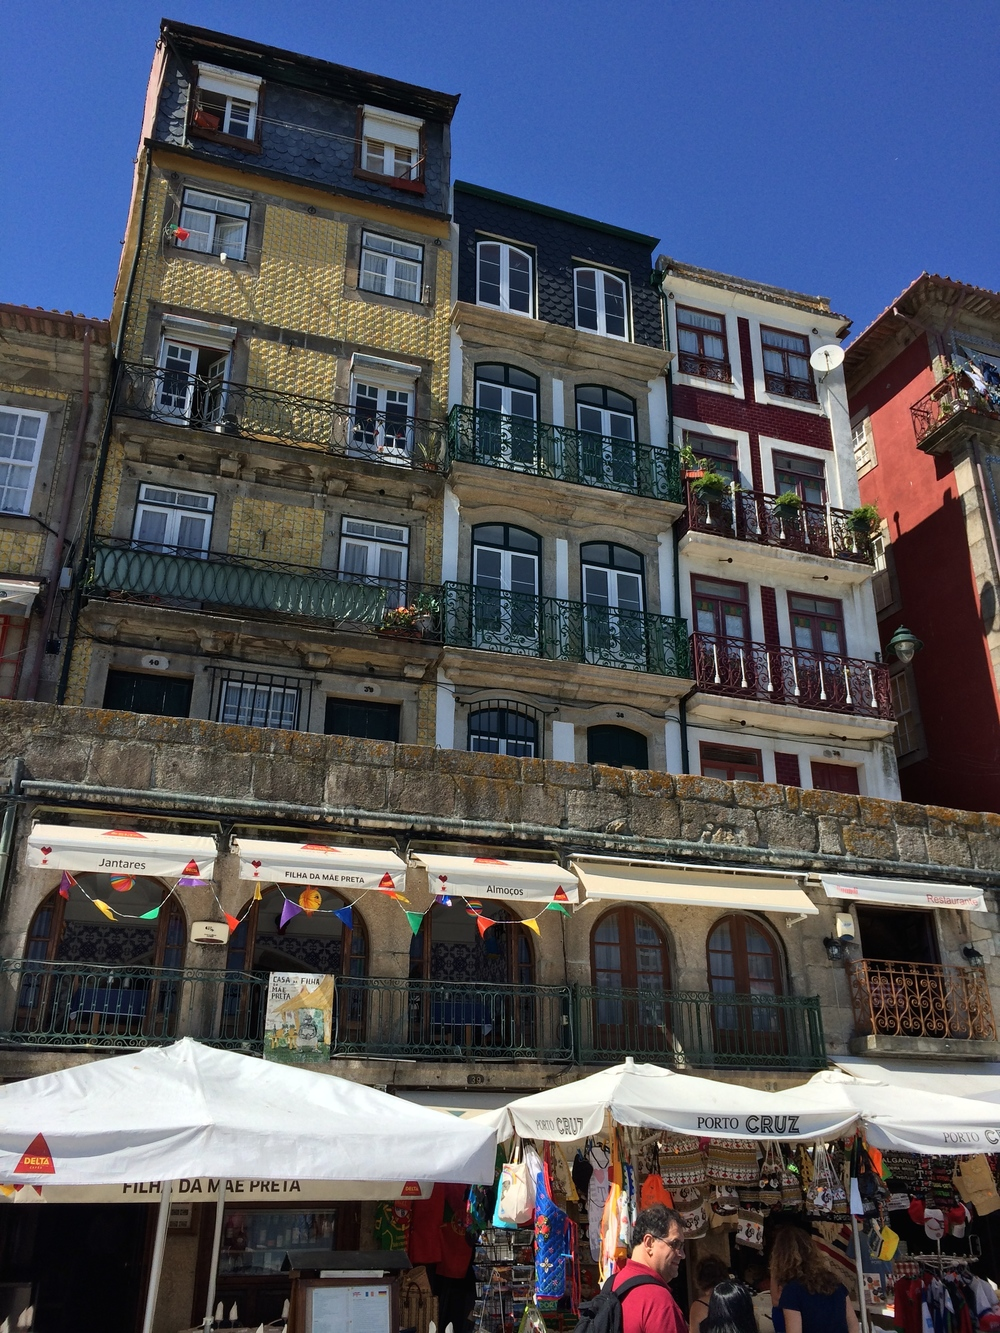 Apartments and shops in the Ribeira district next to the Douro River.